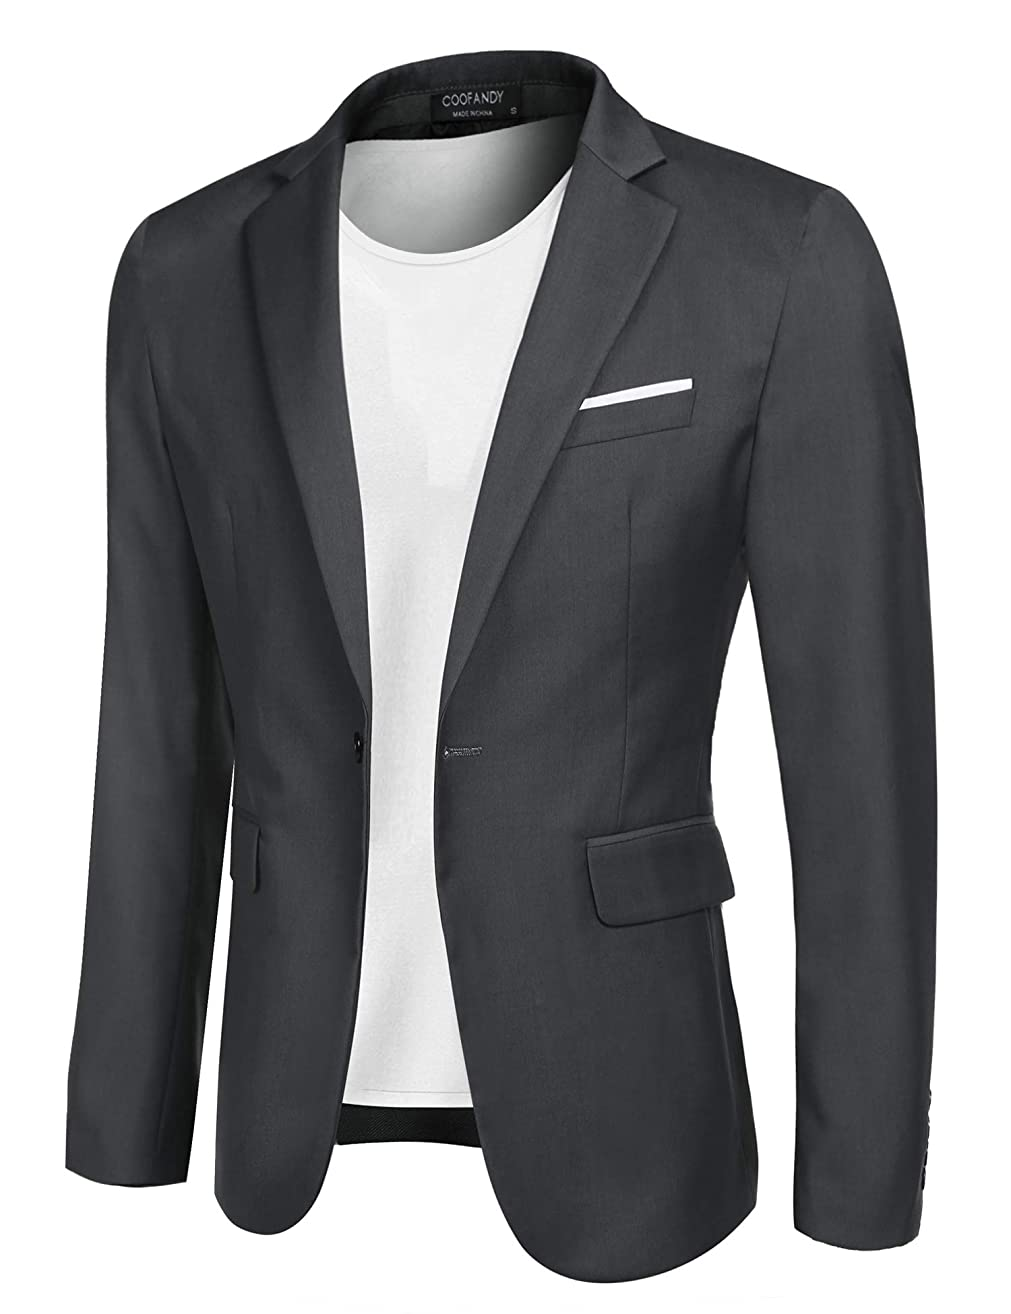 COOFANDY Men's Casual Blazer Jacket Slim Fit Sport Coats Lightweight One Button Suit Jacket